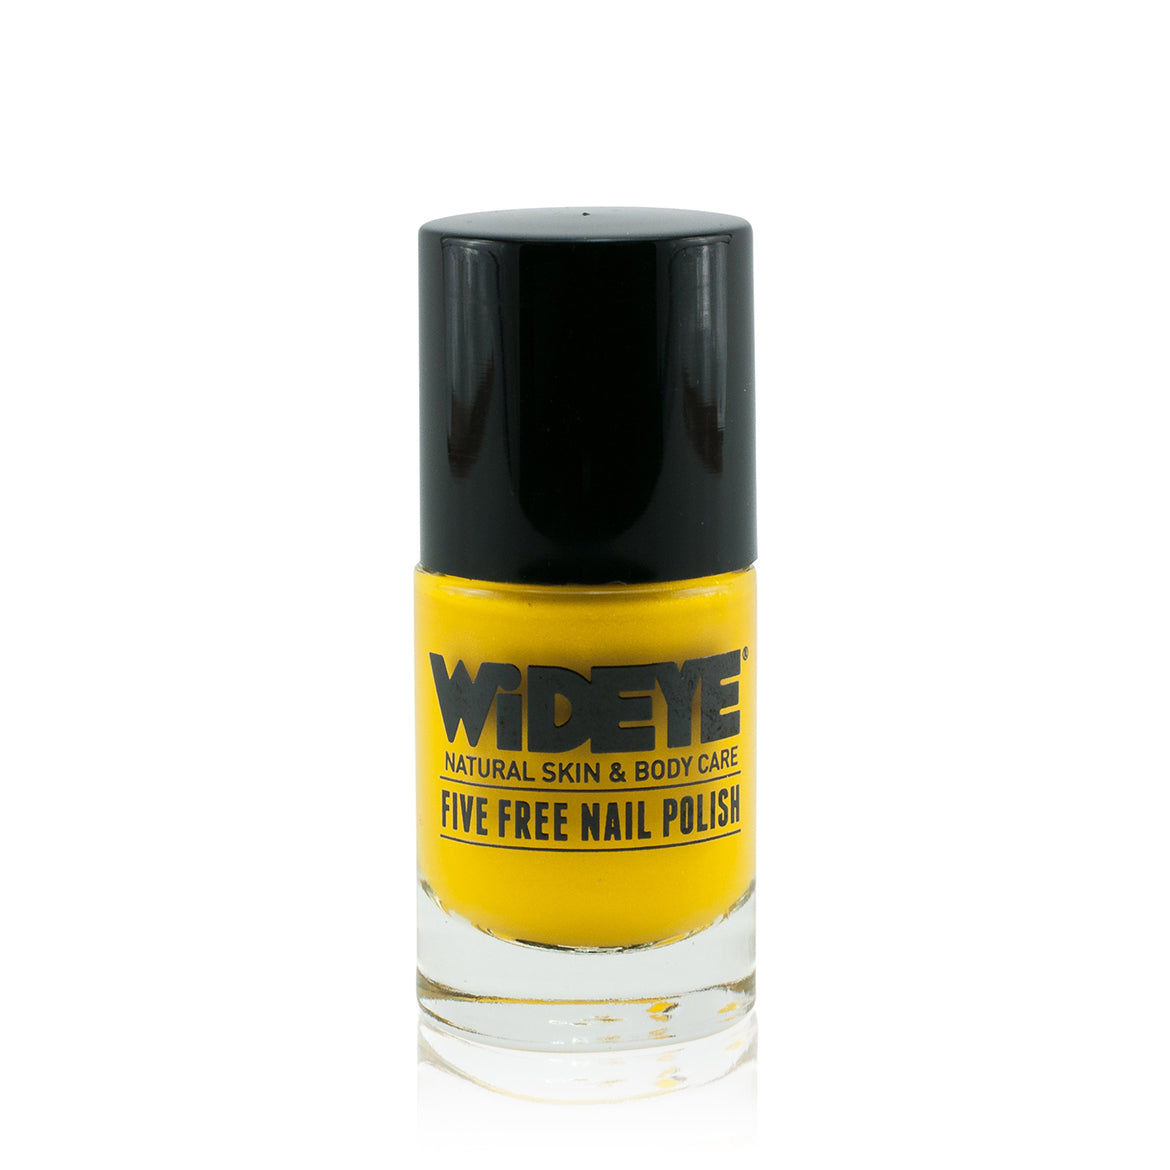 Bright bold yellow nail varnish in glass bottle by WiDEYE